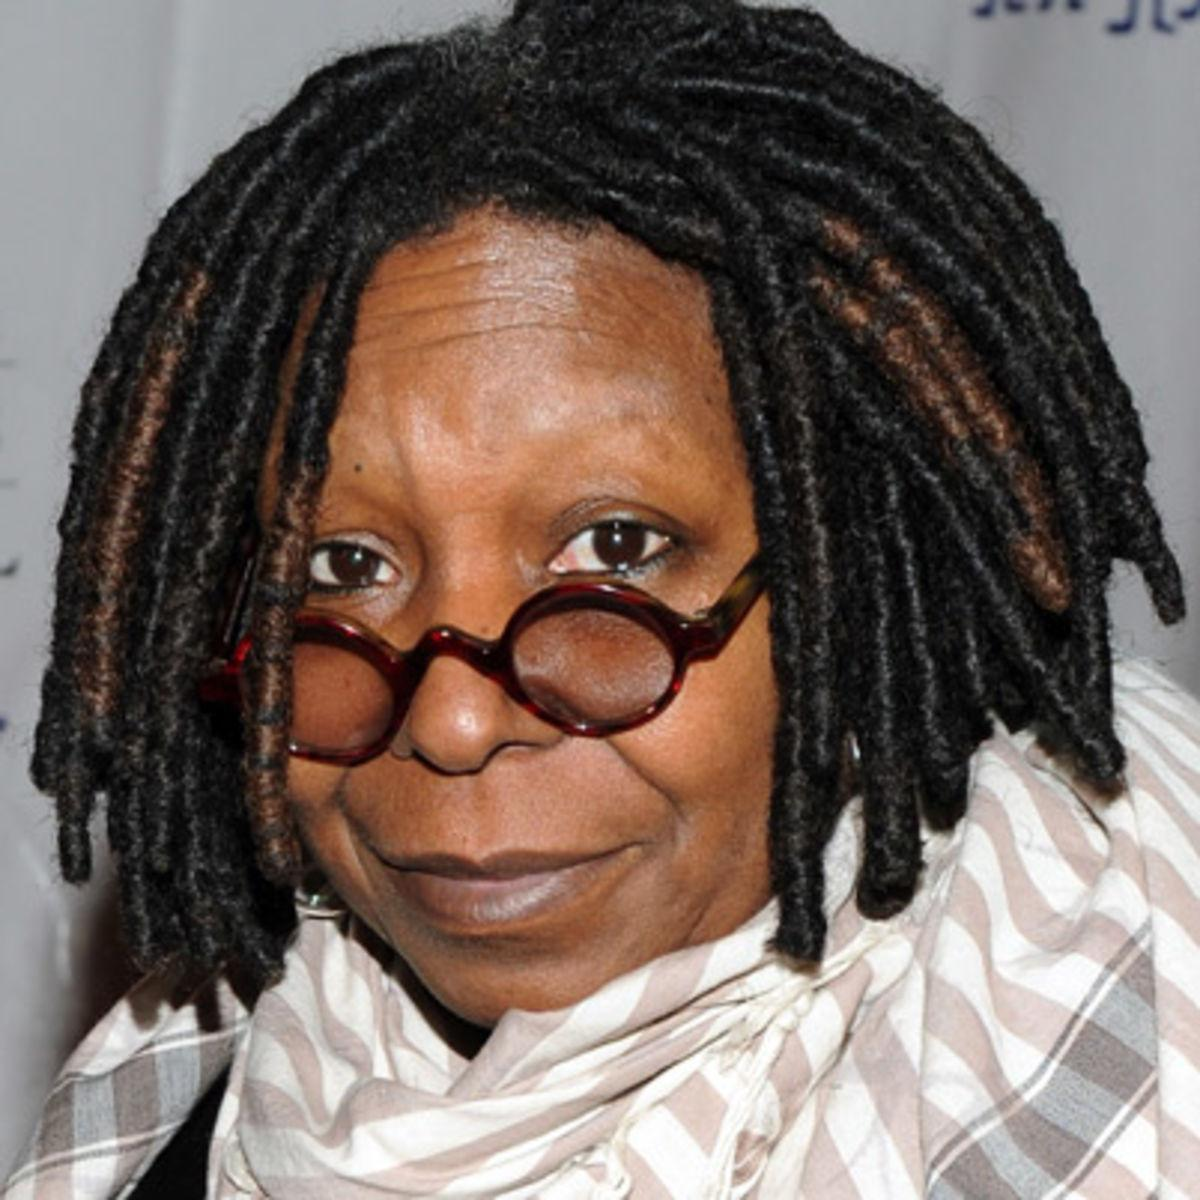 Pictures of Whoopi Goldberg - Pictures Of Celebrities